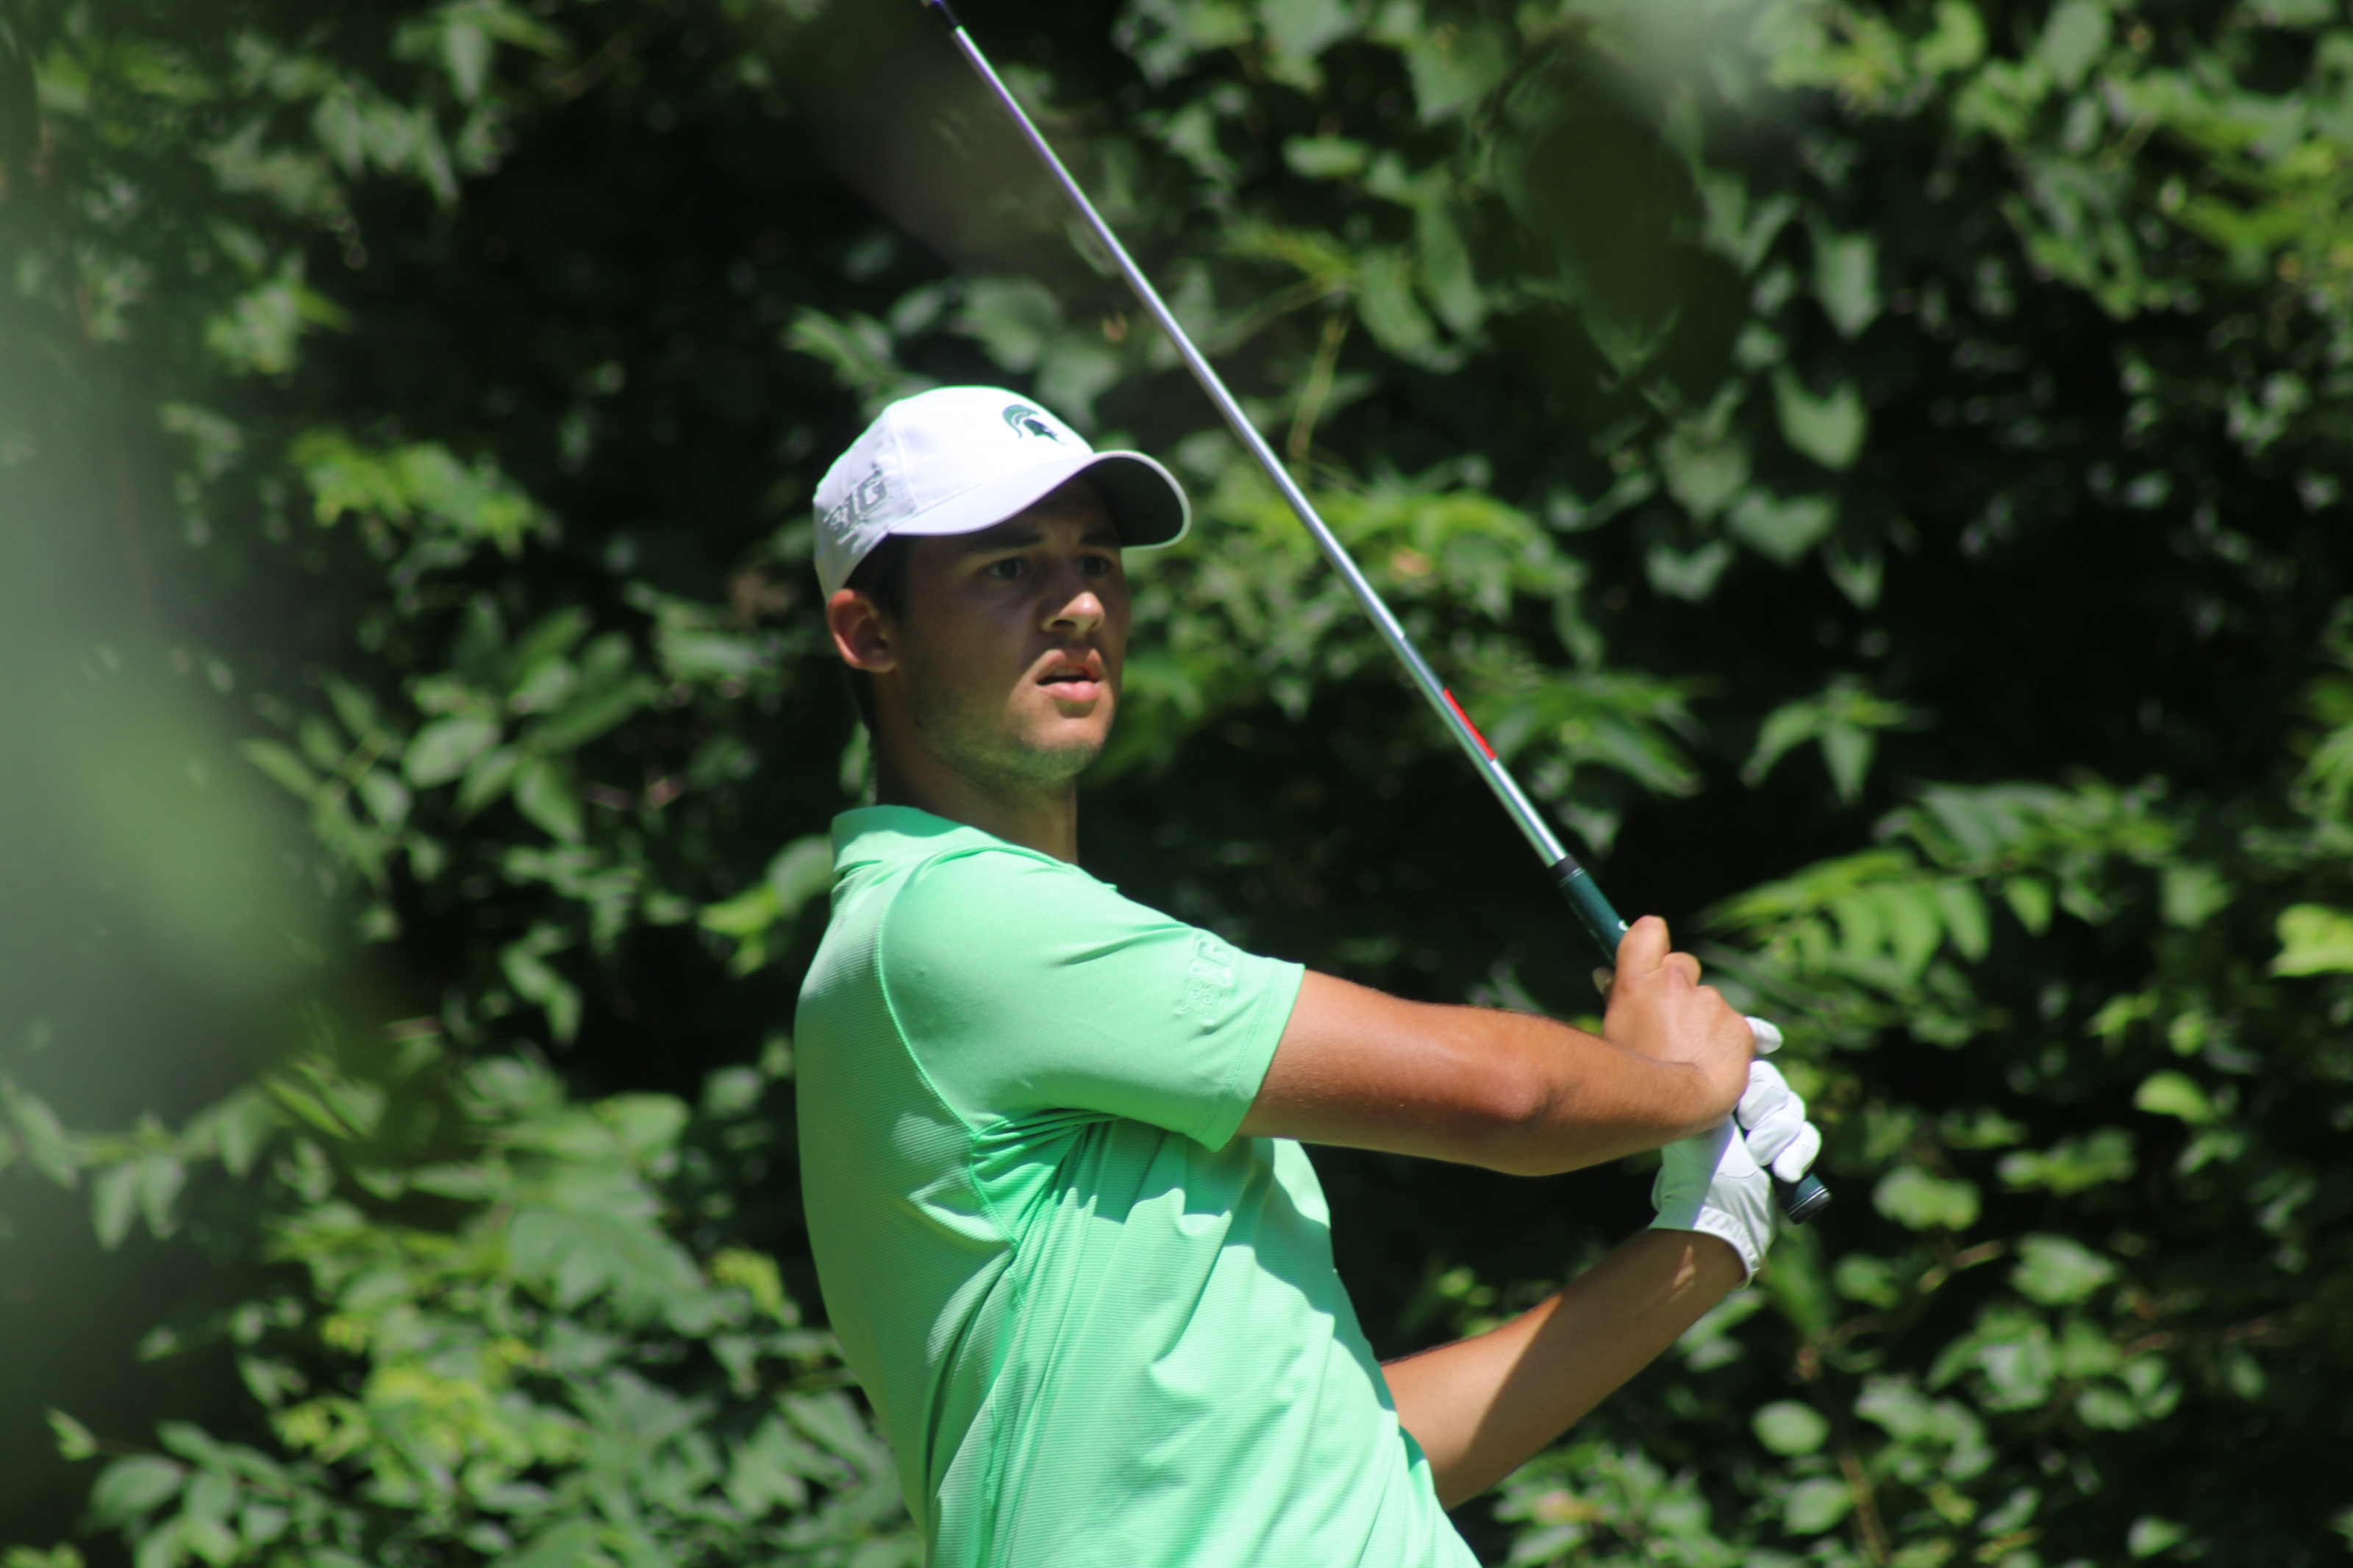 Sharp Wins State Open with Clutch Putt on 18